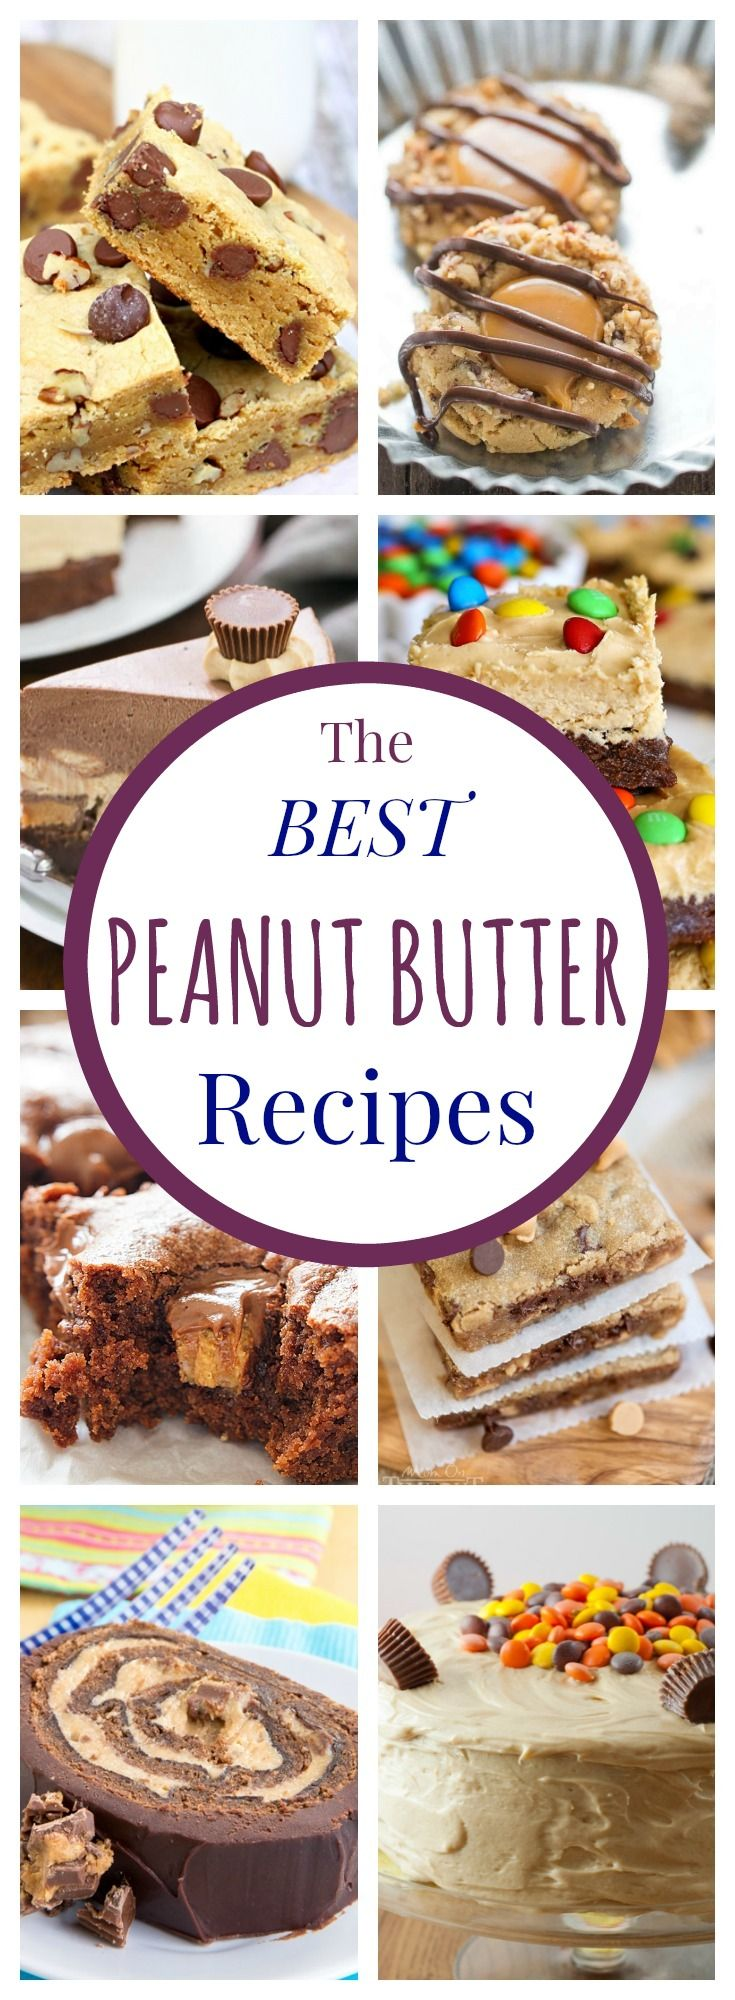 Over 30 of the Best Peanut Butter Recipes - cookies, bars, cakes, snacks, even some dinner recipes!